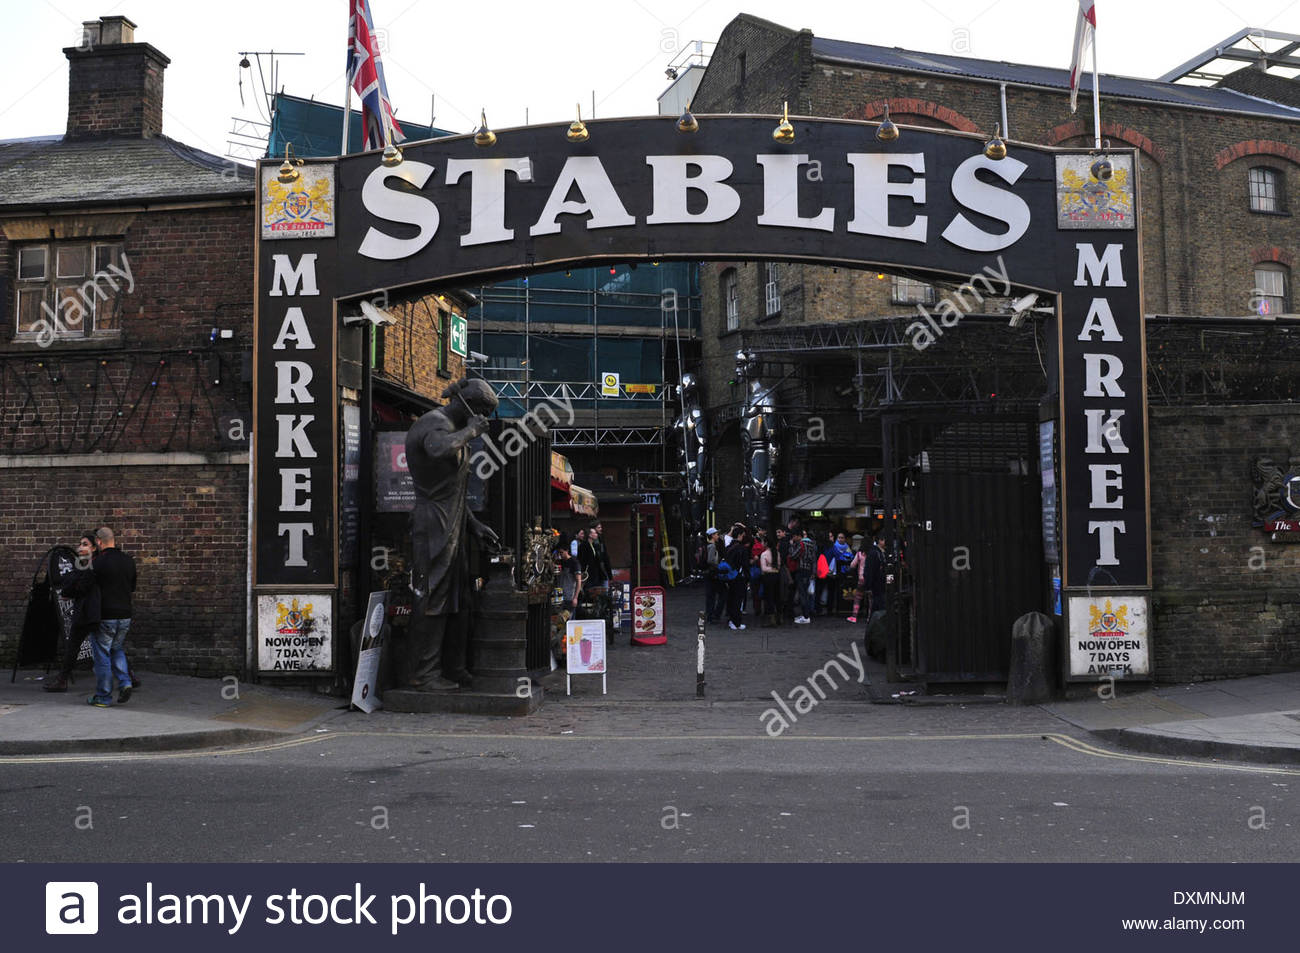 A general view of the entrance of  stables market in Camden Town, London - Stock Image